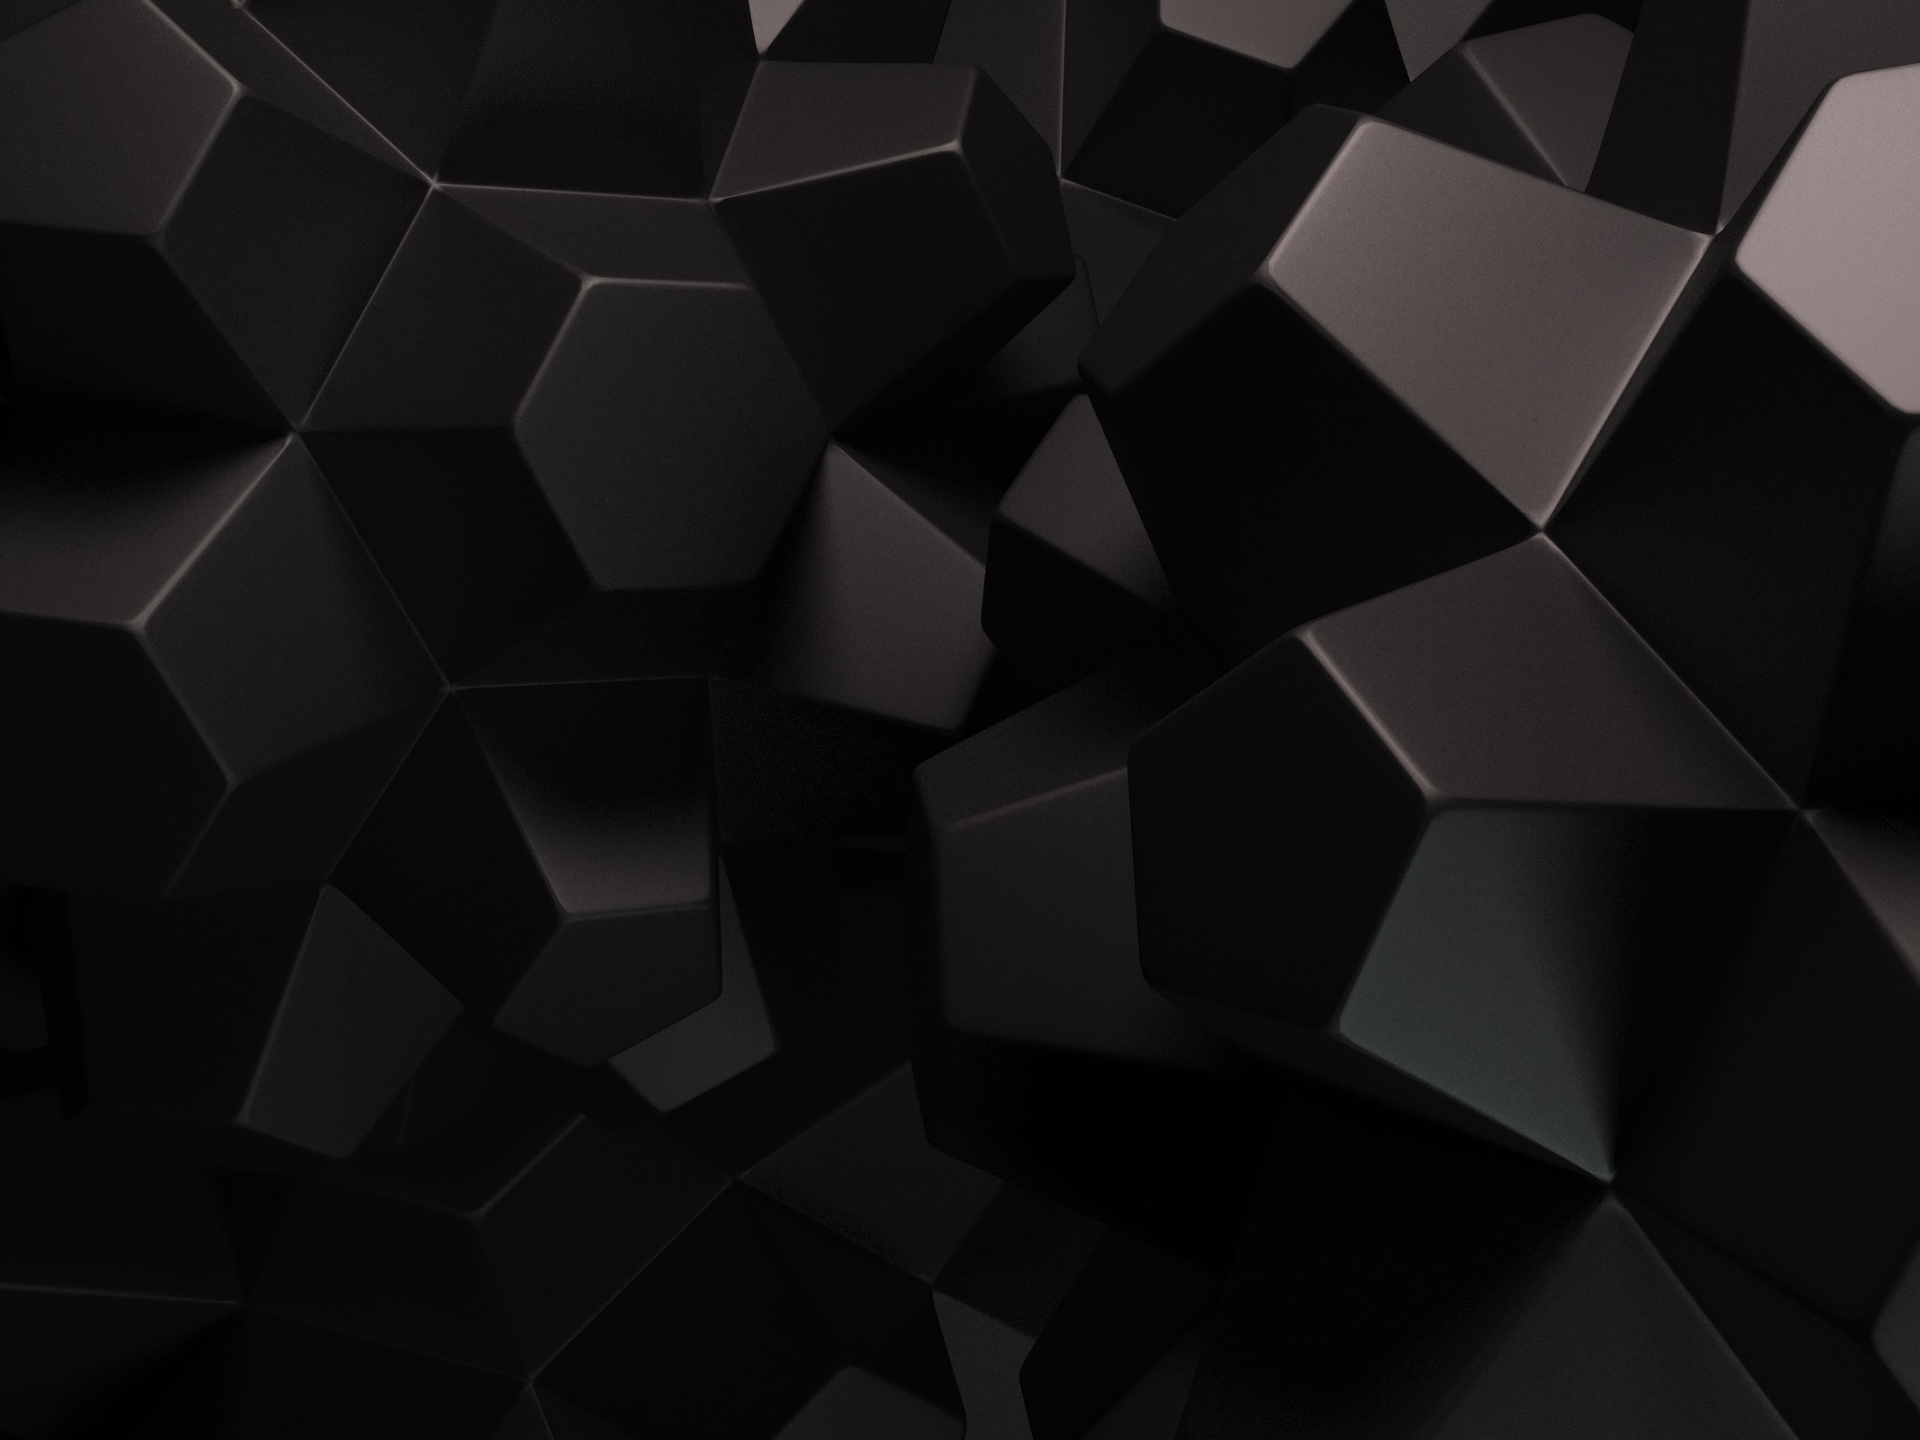 1600x1200 Abstract Wallpapers, Desktop Backgrounds HD, Pictures ...